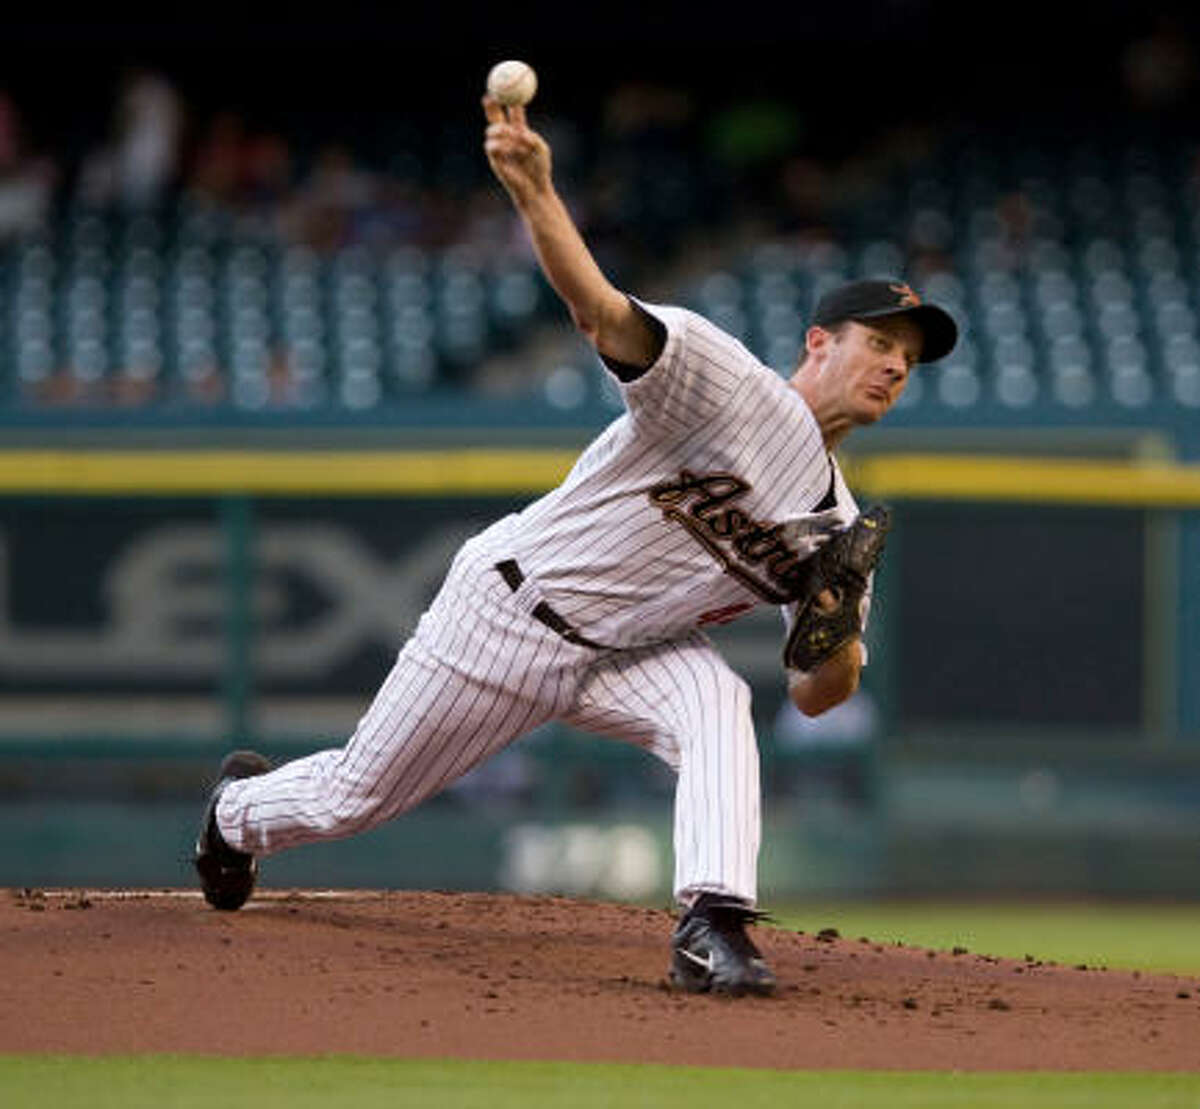 Astros starter Roy Oswalt left with his sixth no-decision of the year, giving up three runs in 6 1/3 innings.